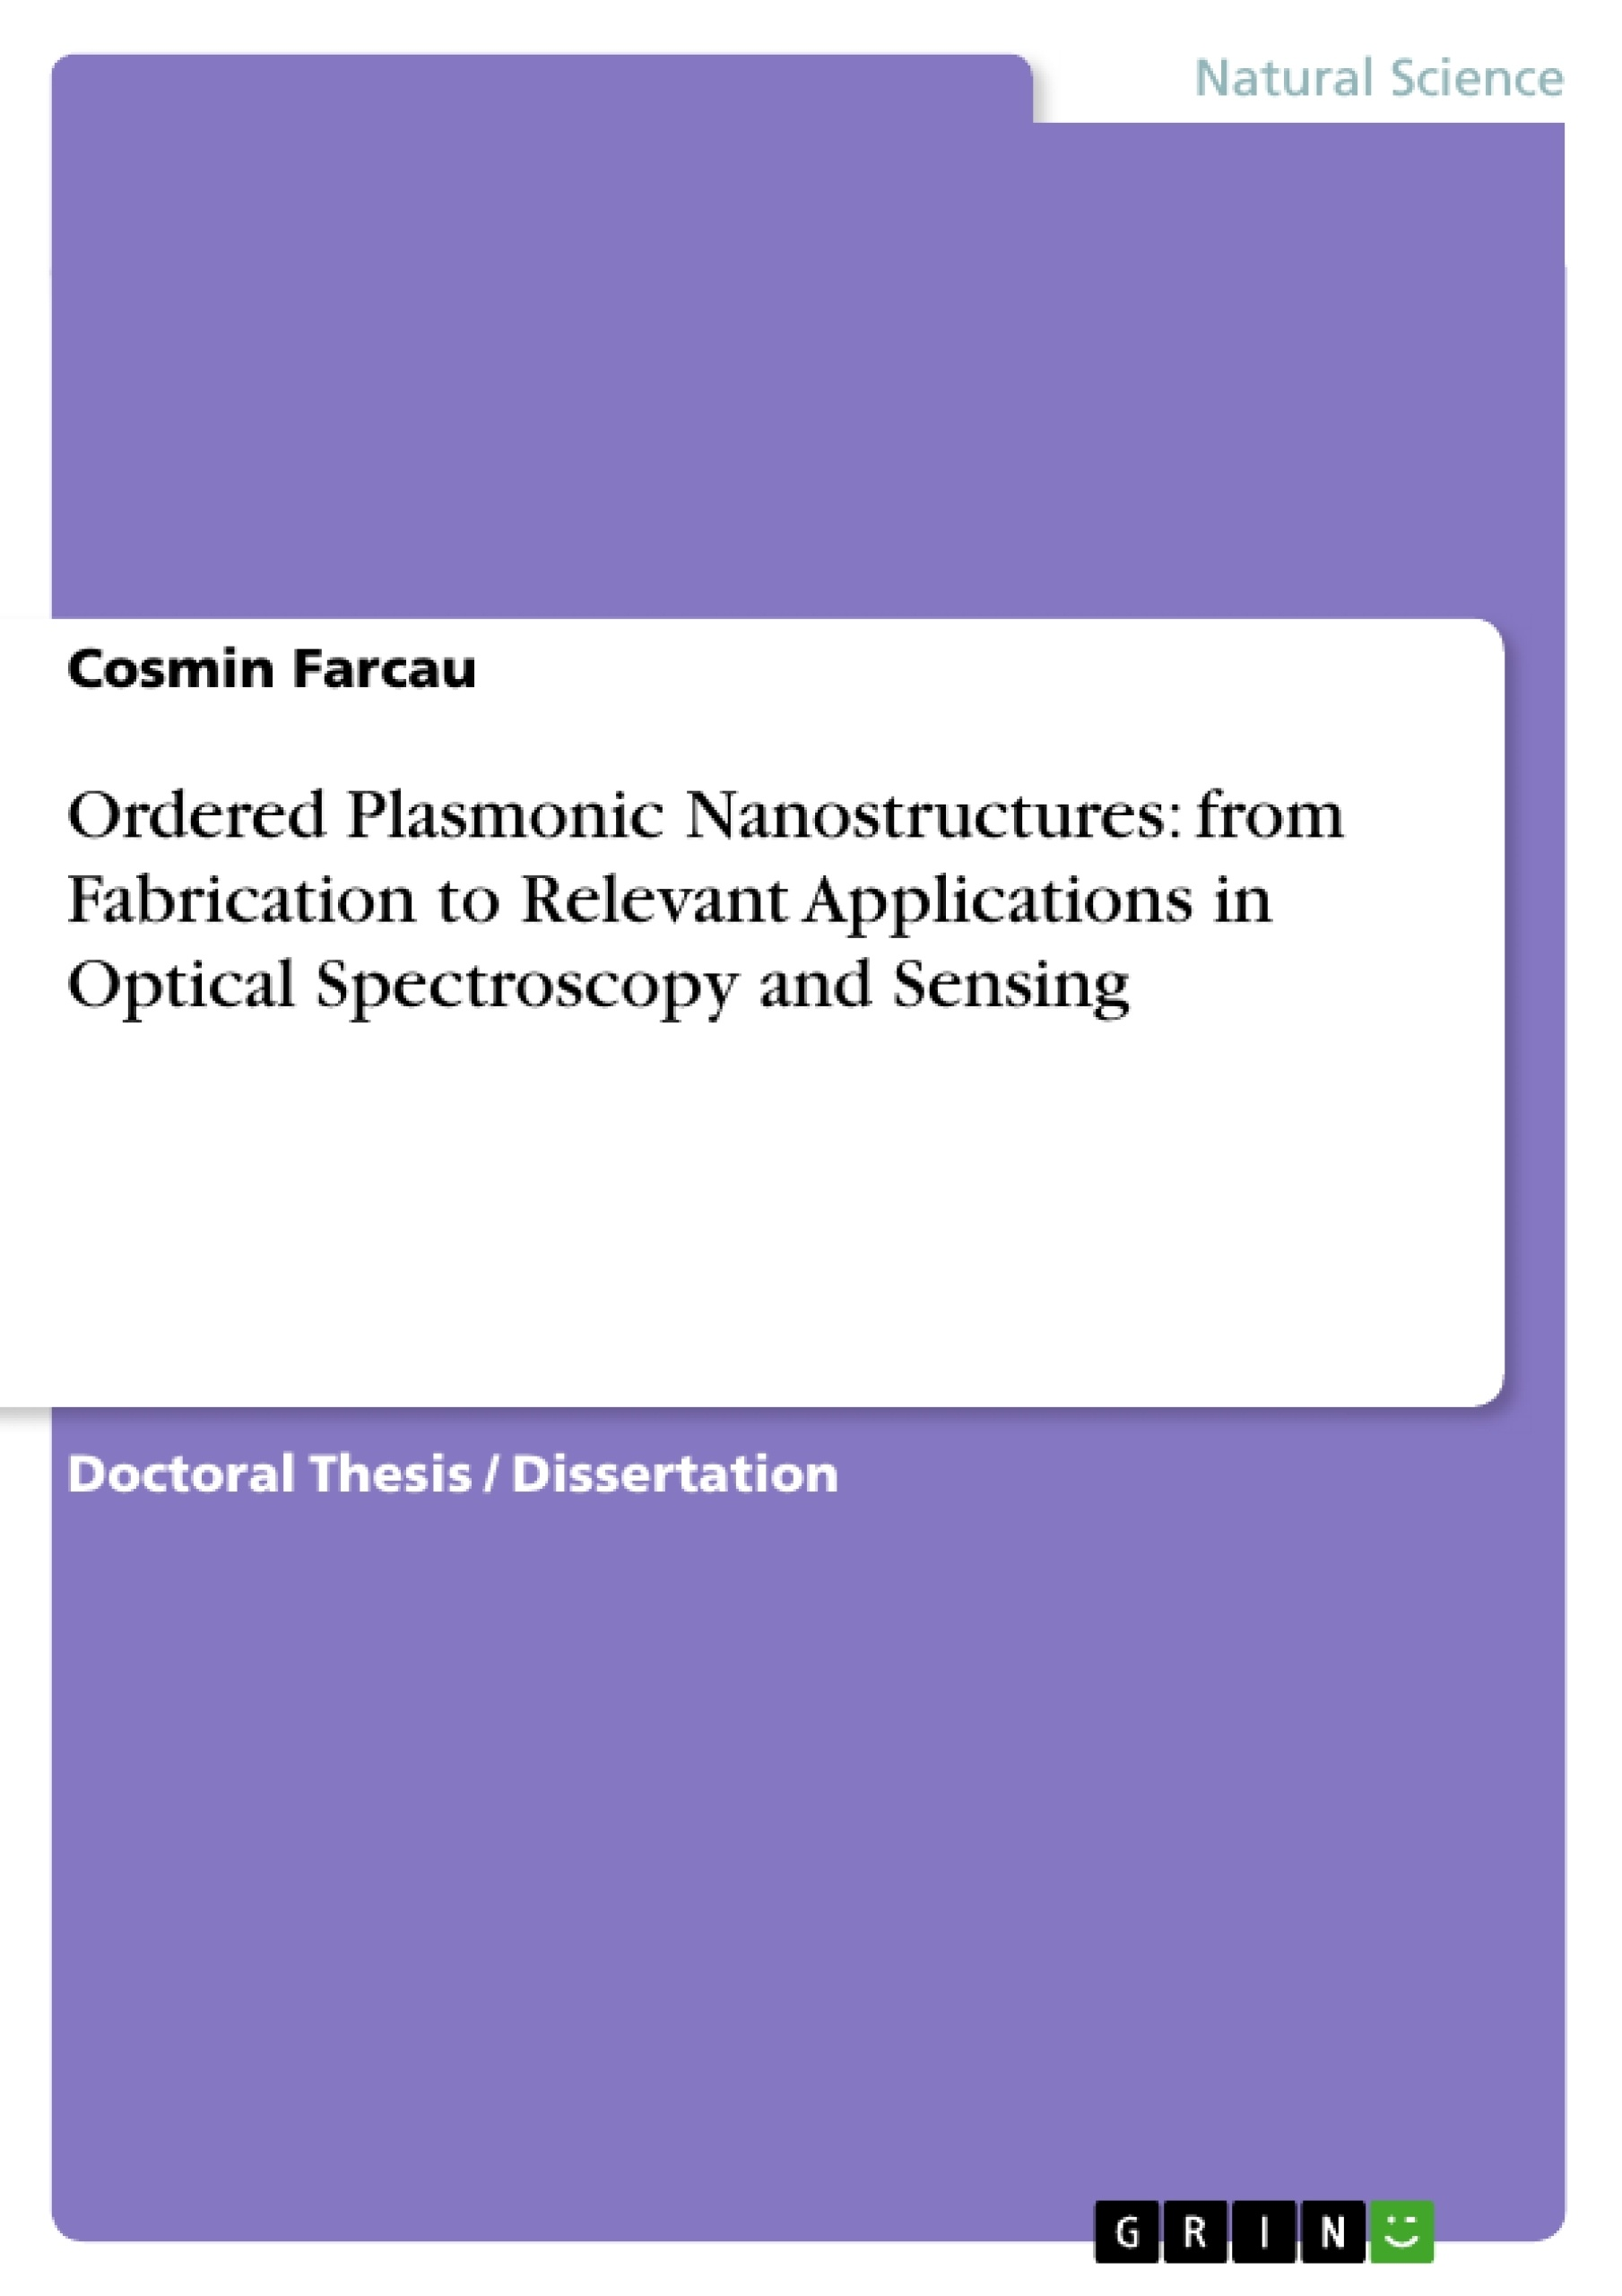 Title: Ordered Plasmonic Nanostructures: from Fabrication to Relevant Applications in Optical Spectroscopy and Sensing